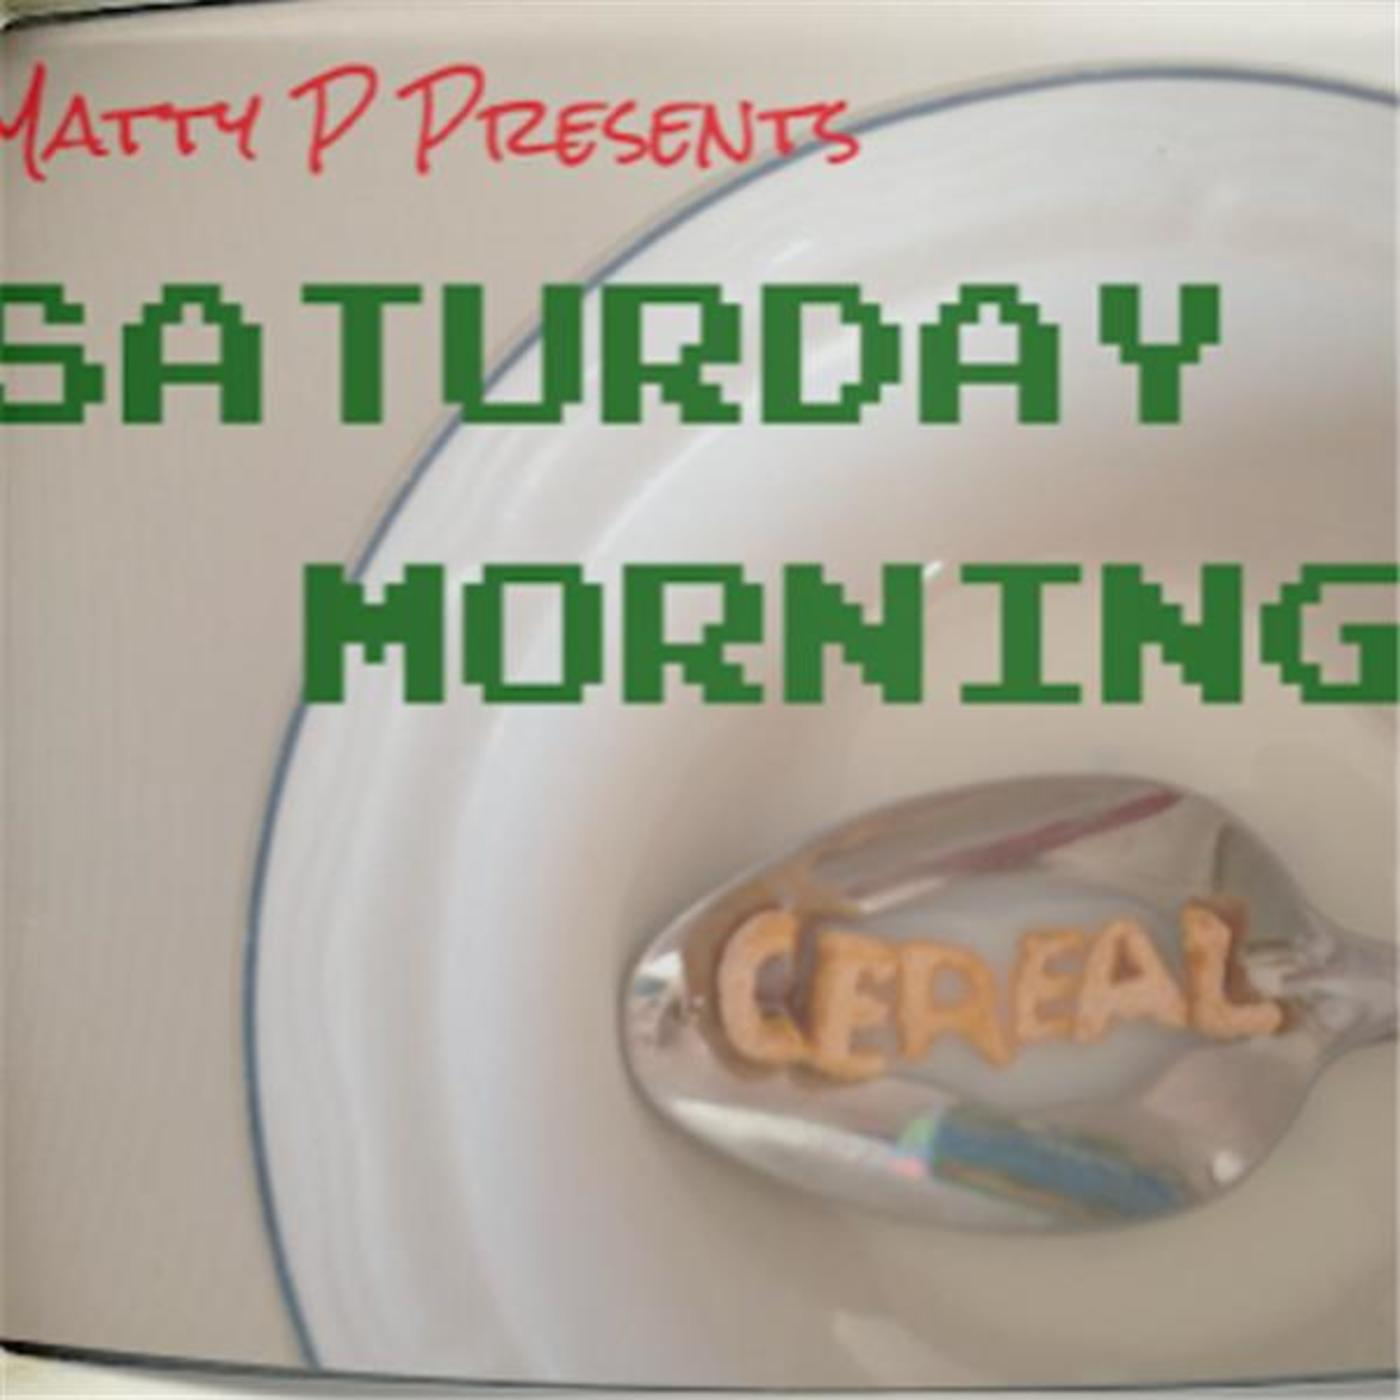 Matty P Presents: Saturday Morning Cereal